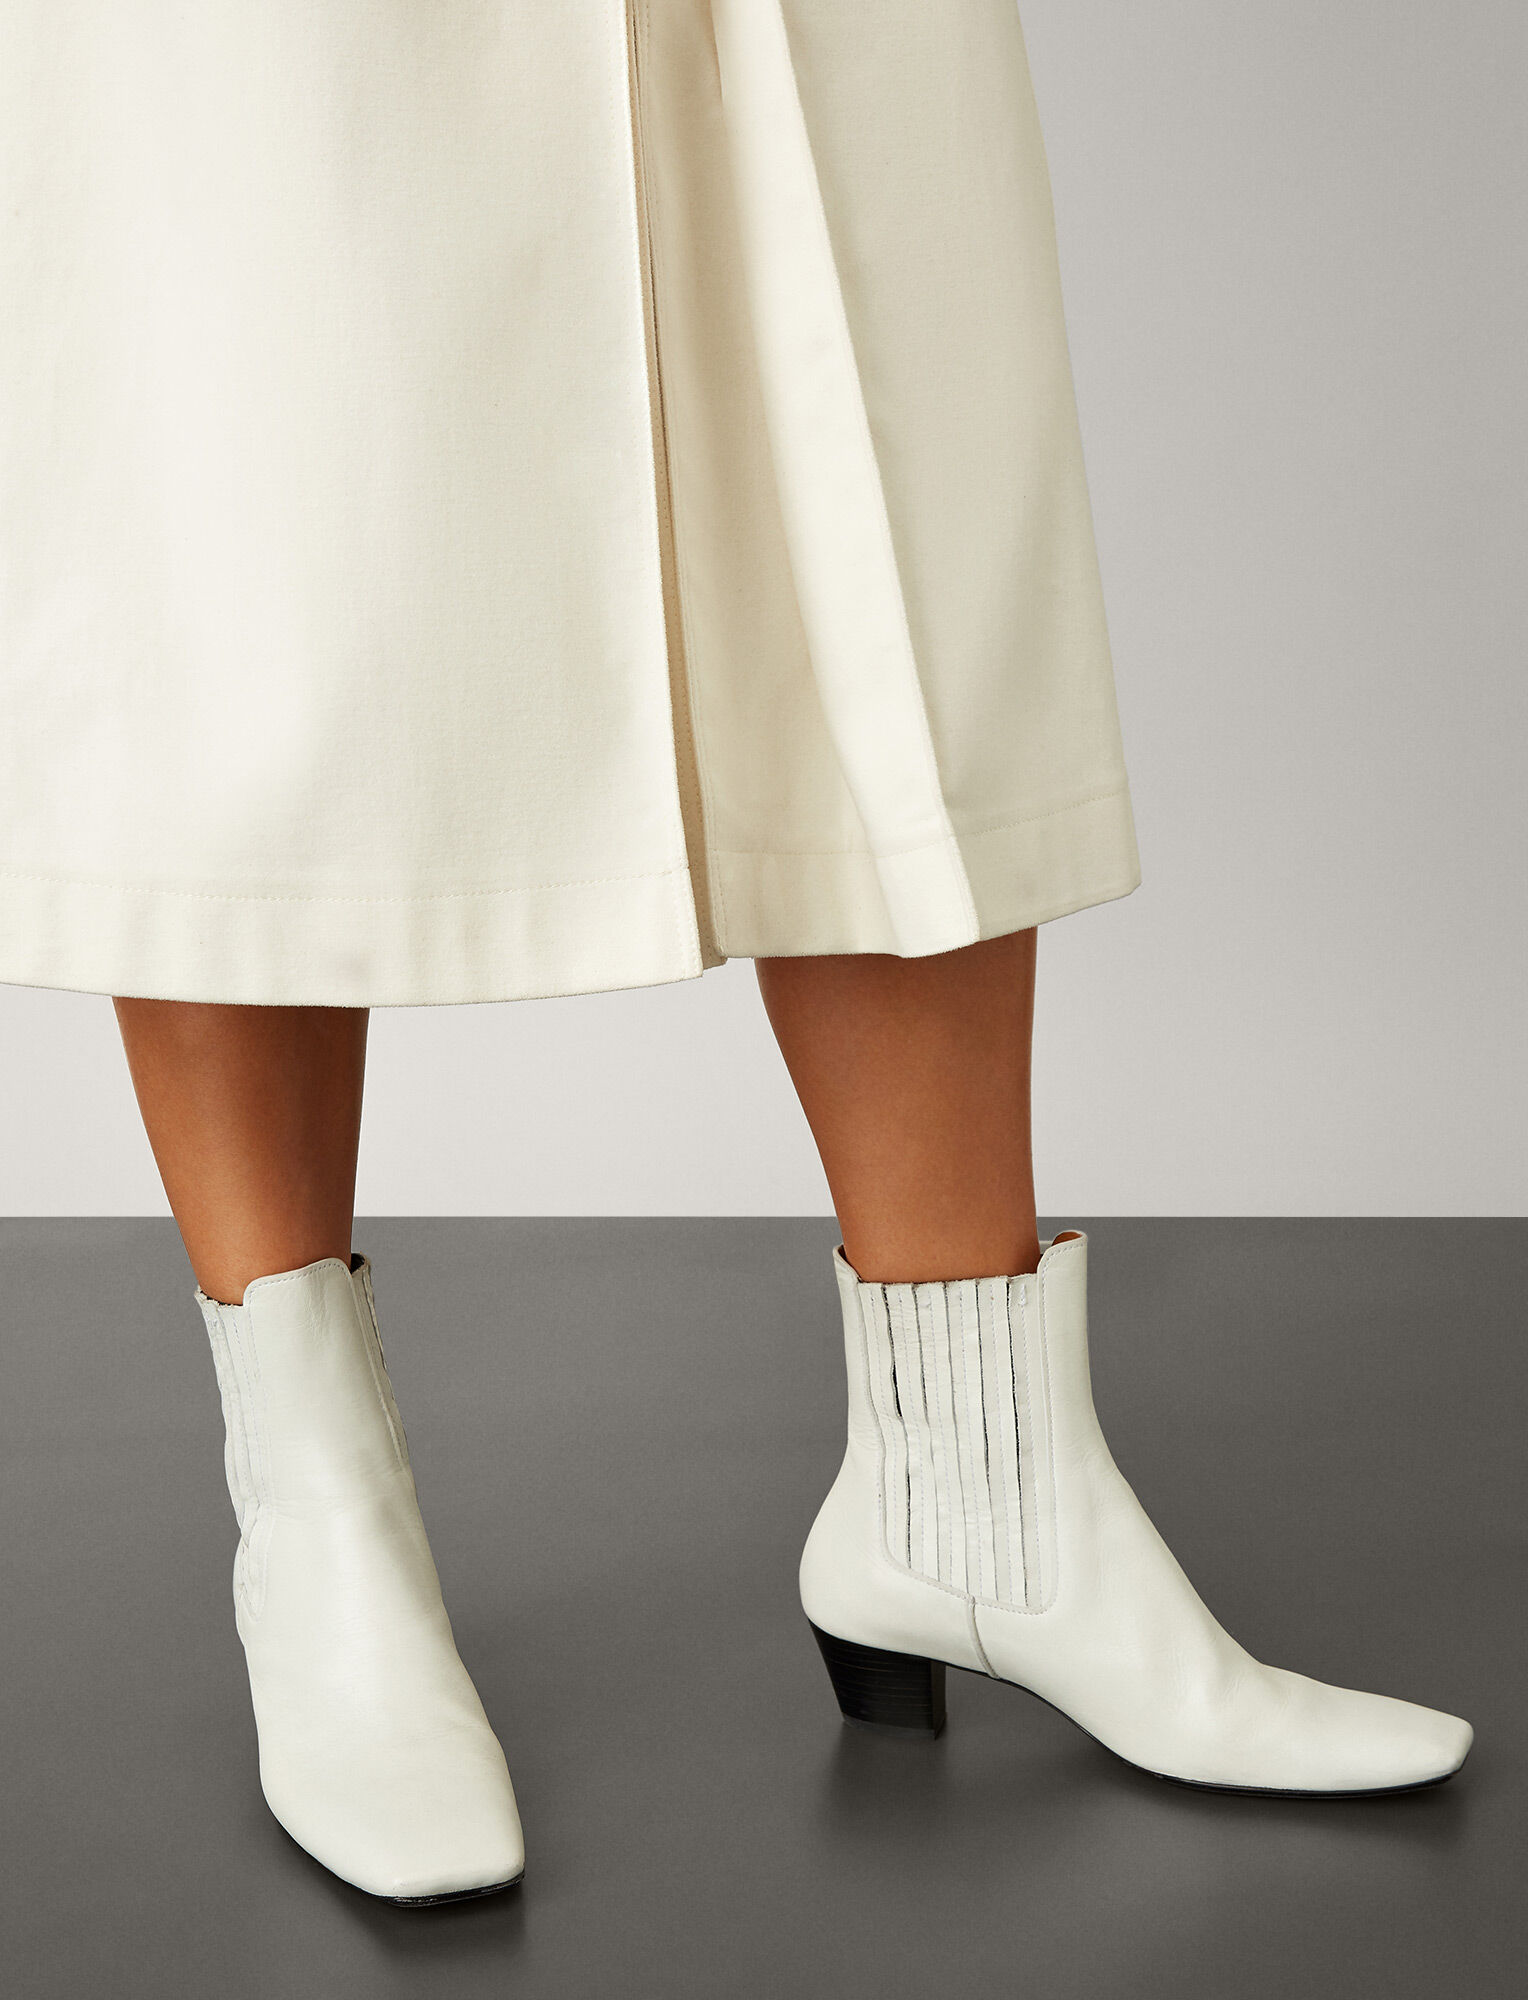 Joseph, Bottines Bettina en cuir, in WHITE